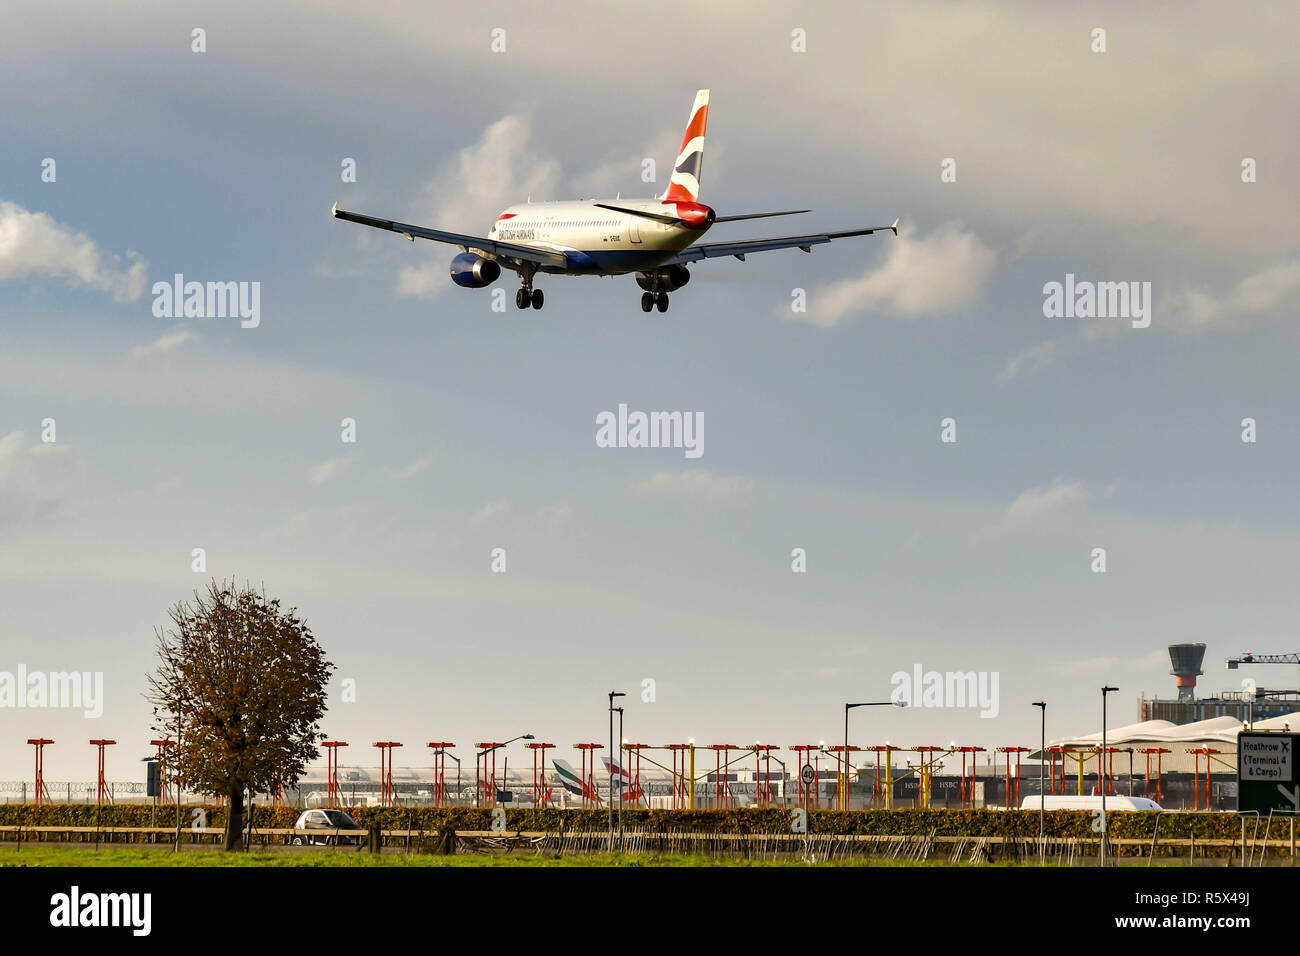 LONDON, ENGLAND - NOVEMBER 2018: Passenger jet passing over the Instrument Landing System antennae of a runway at London Heathrow Airport - Stock Image